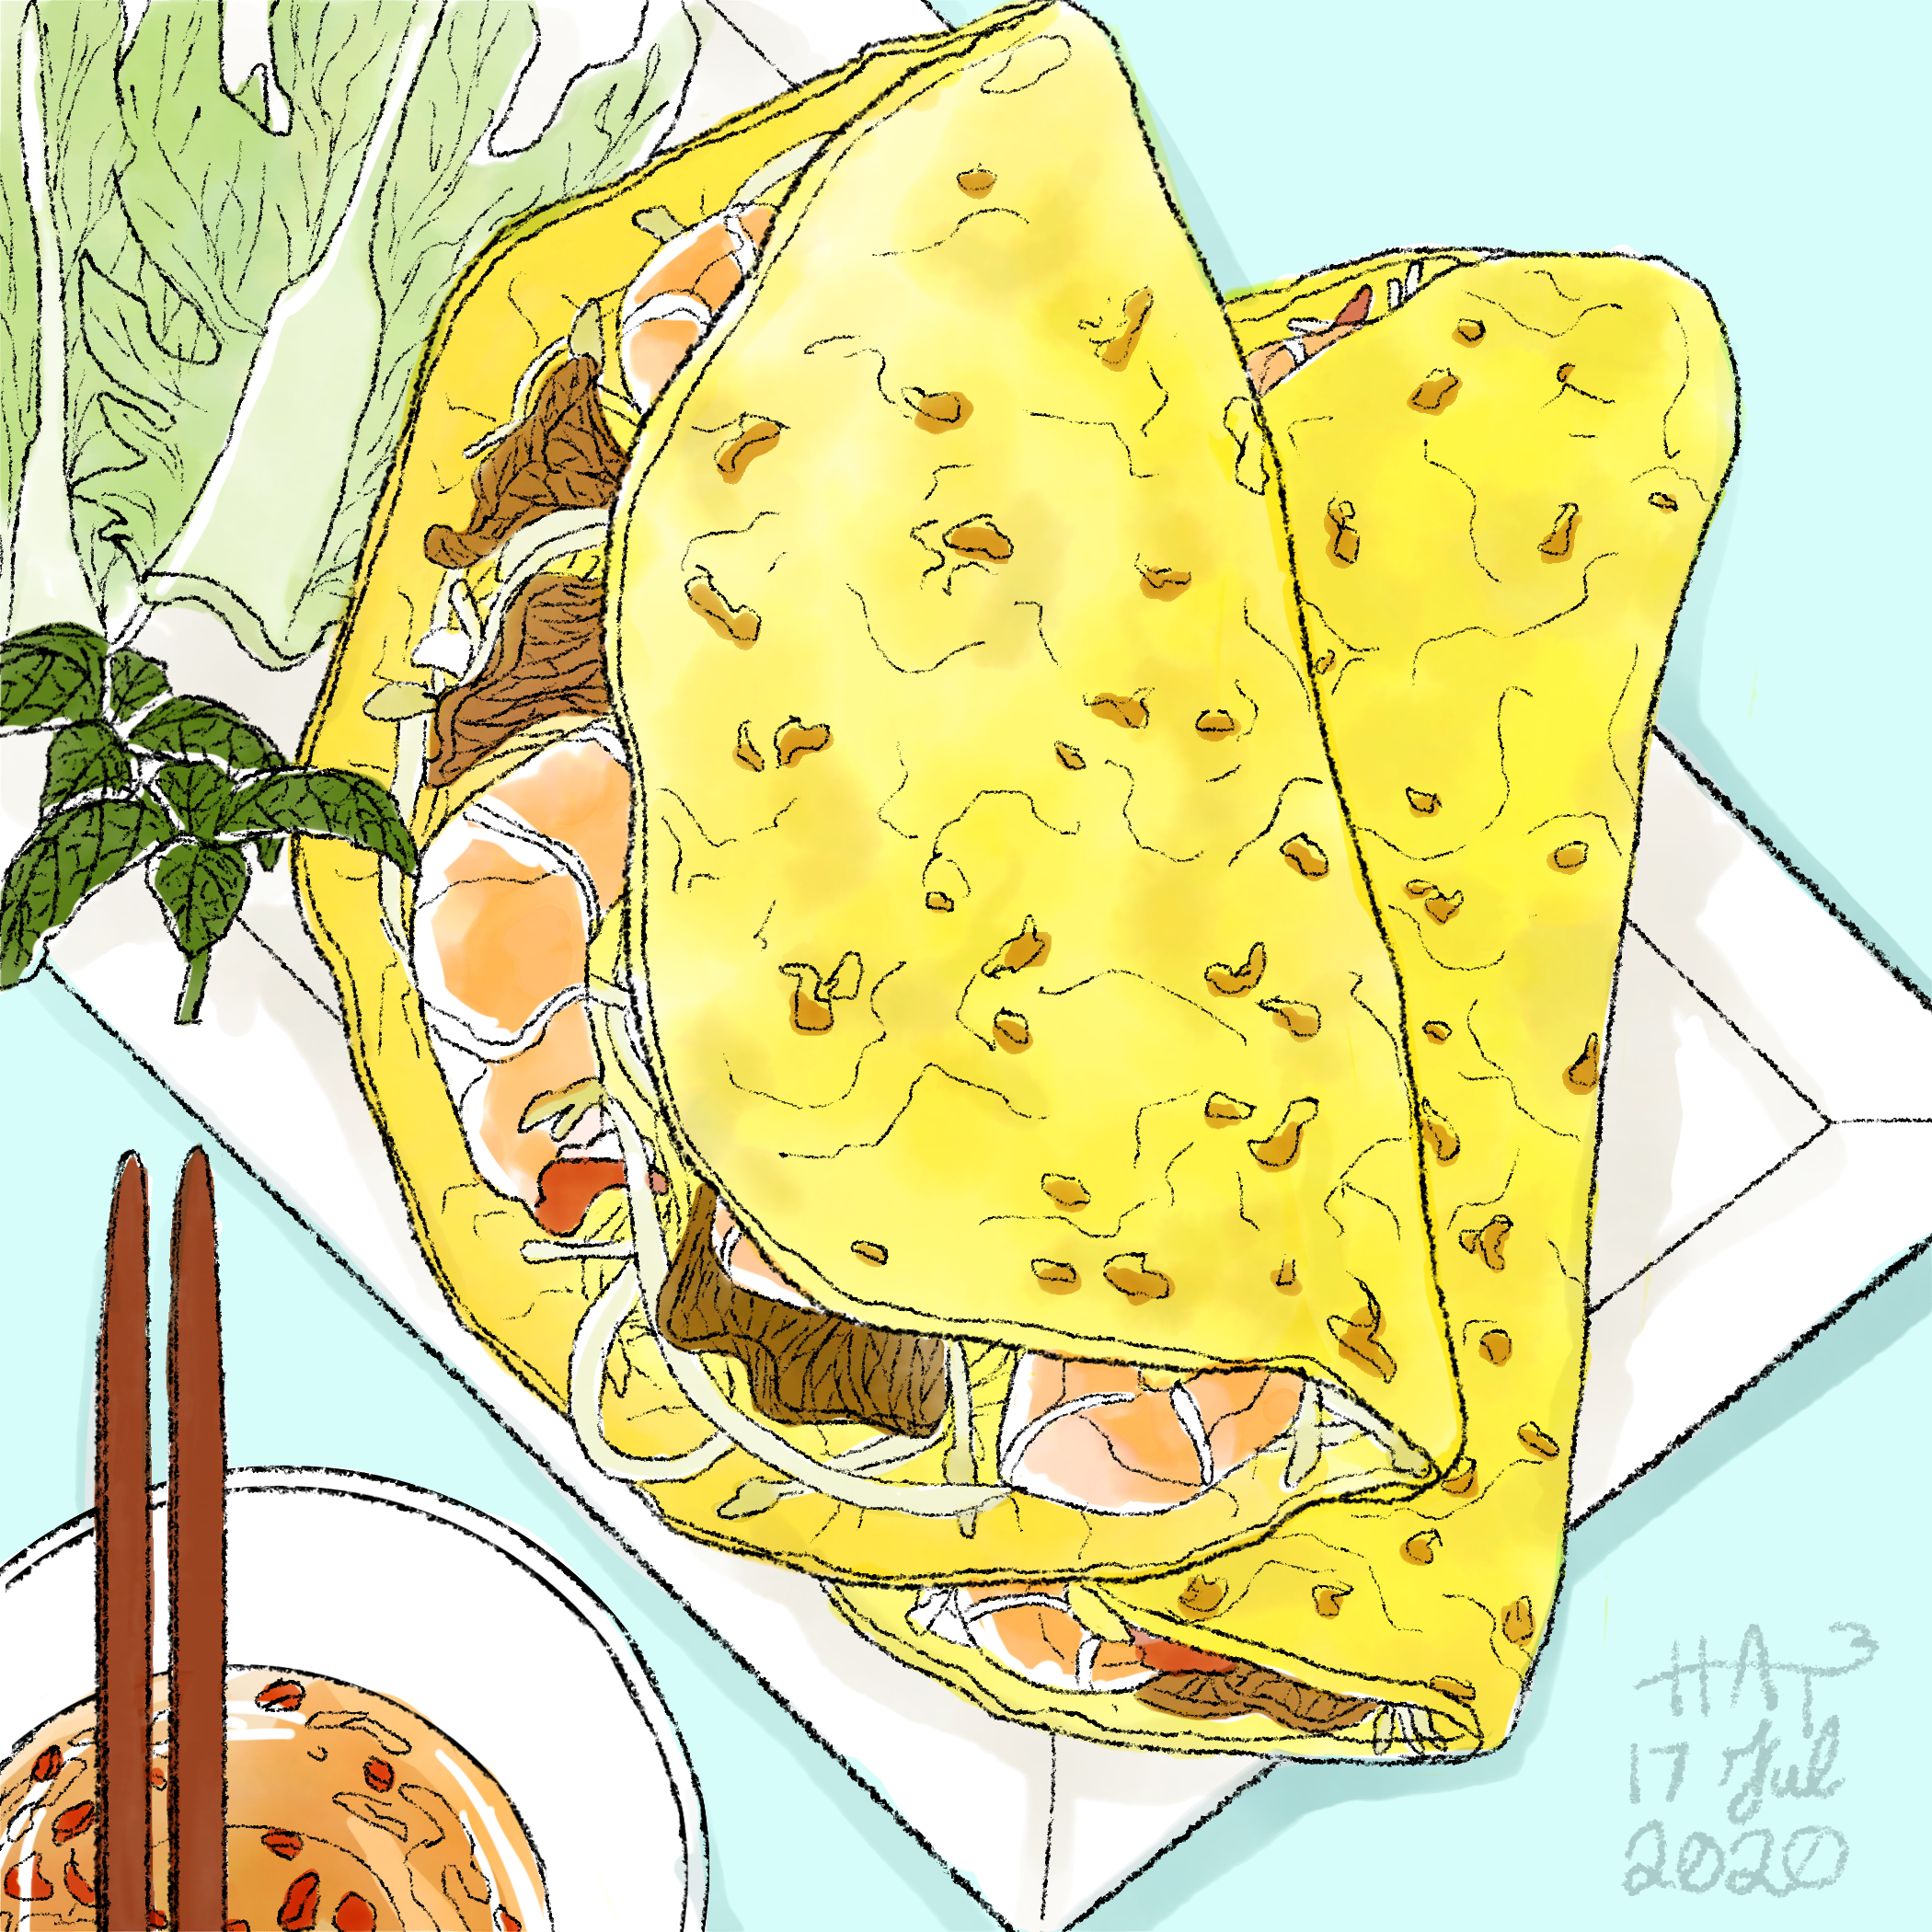 A digital drawing of a bright yellow bánh xèo with shrimp, meat, and beansprout filling lies on a white plate alongside lettuce. There is a bowl in the corner with chopsticks and fish sauce. The background is light blue.